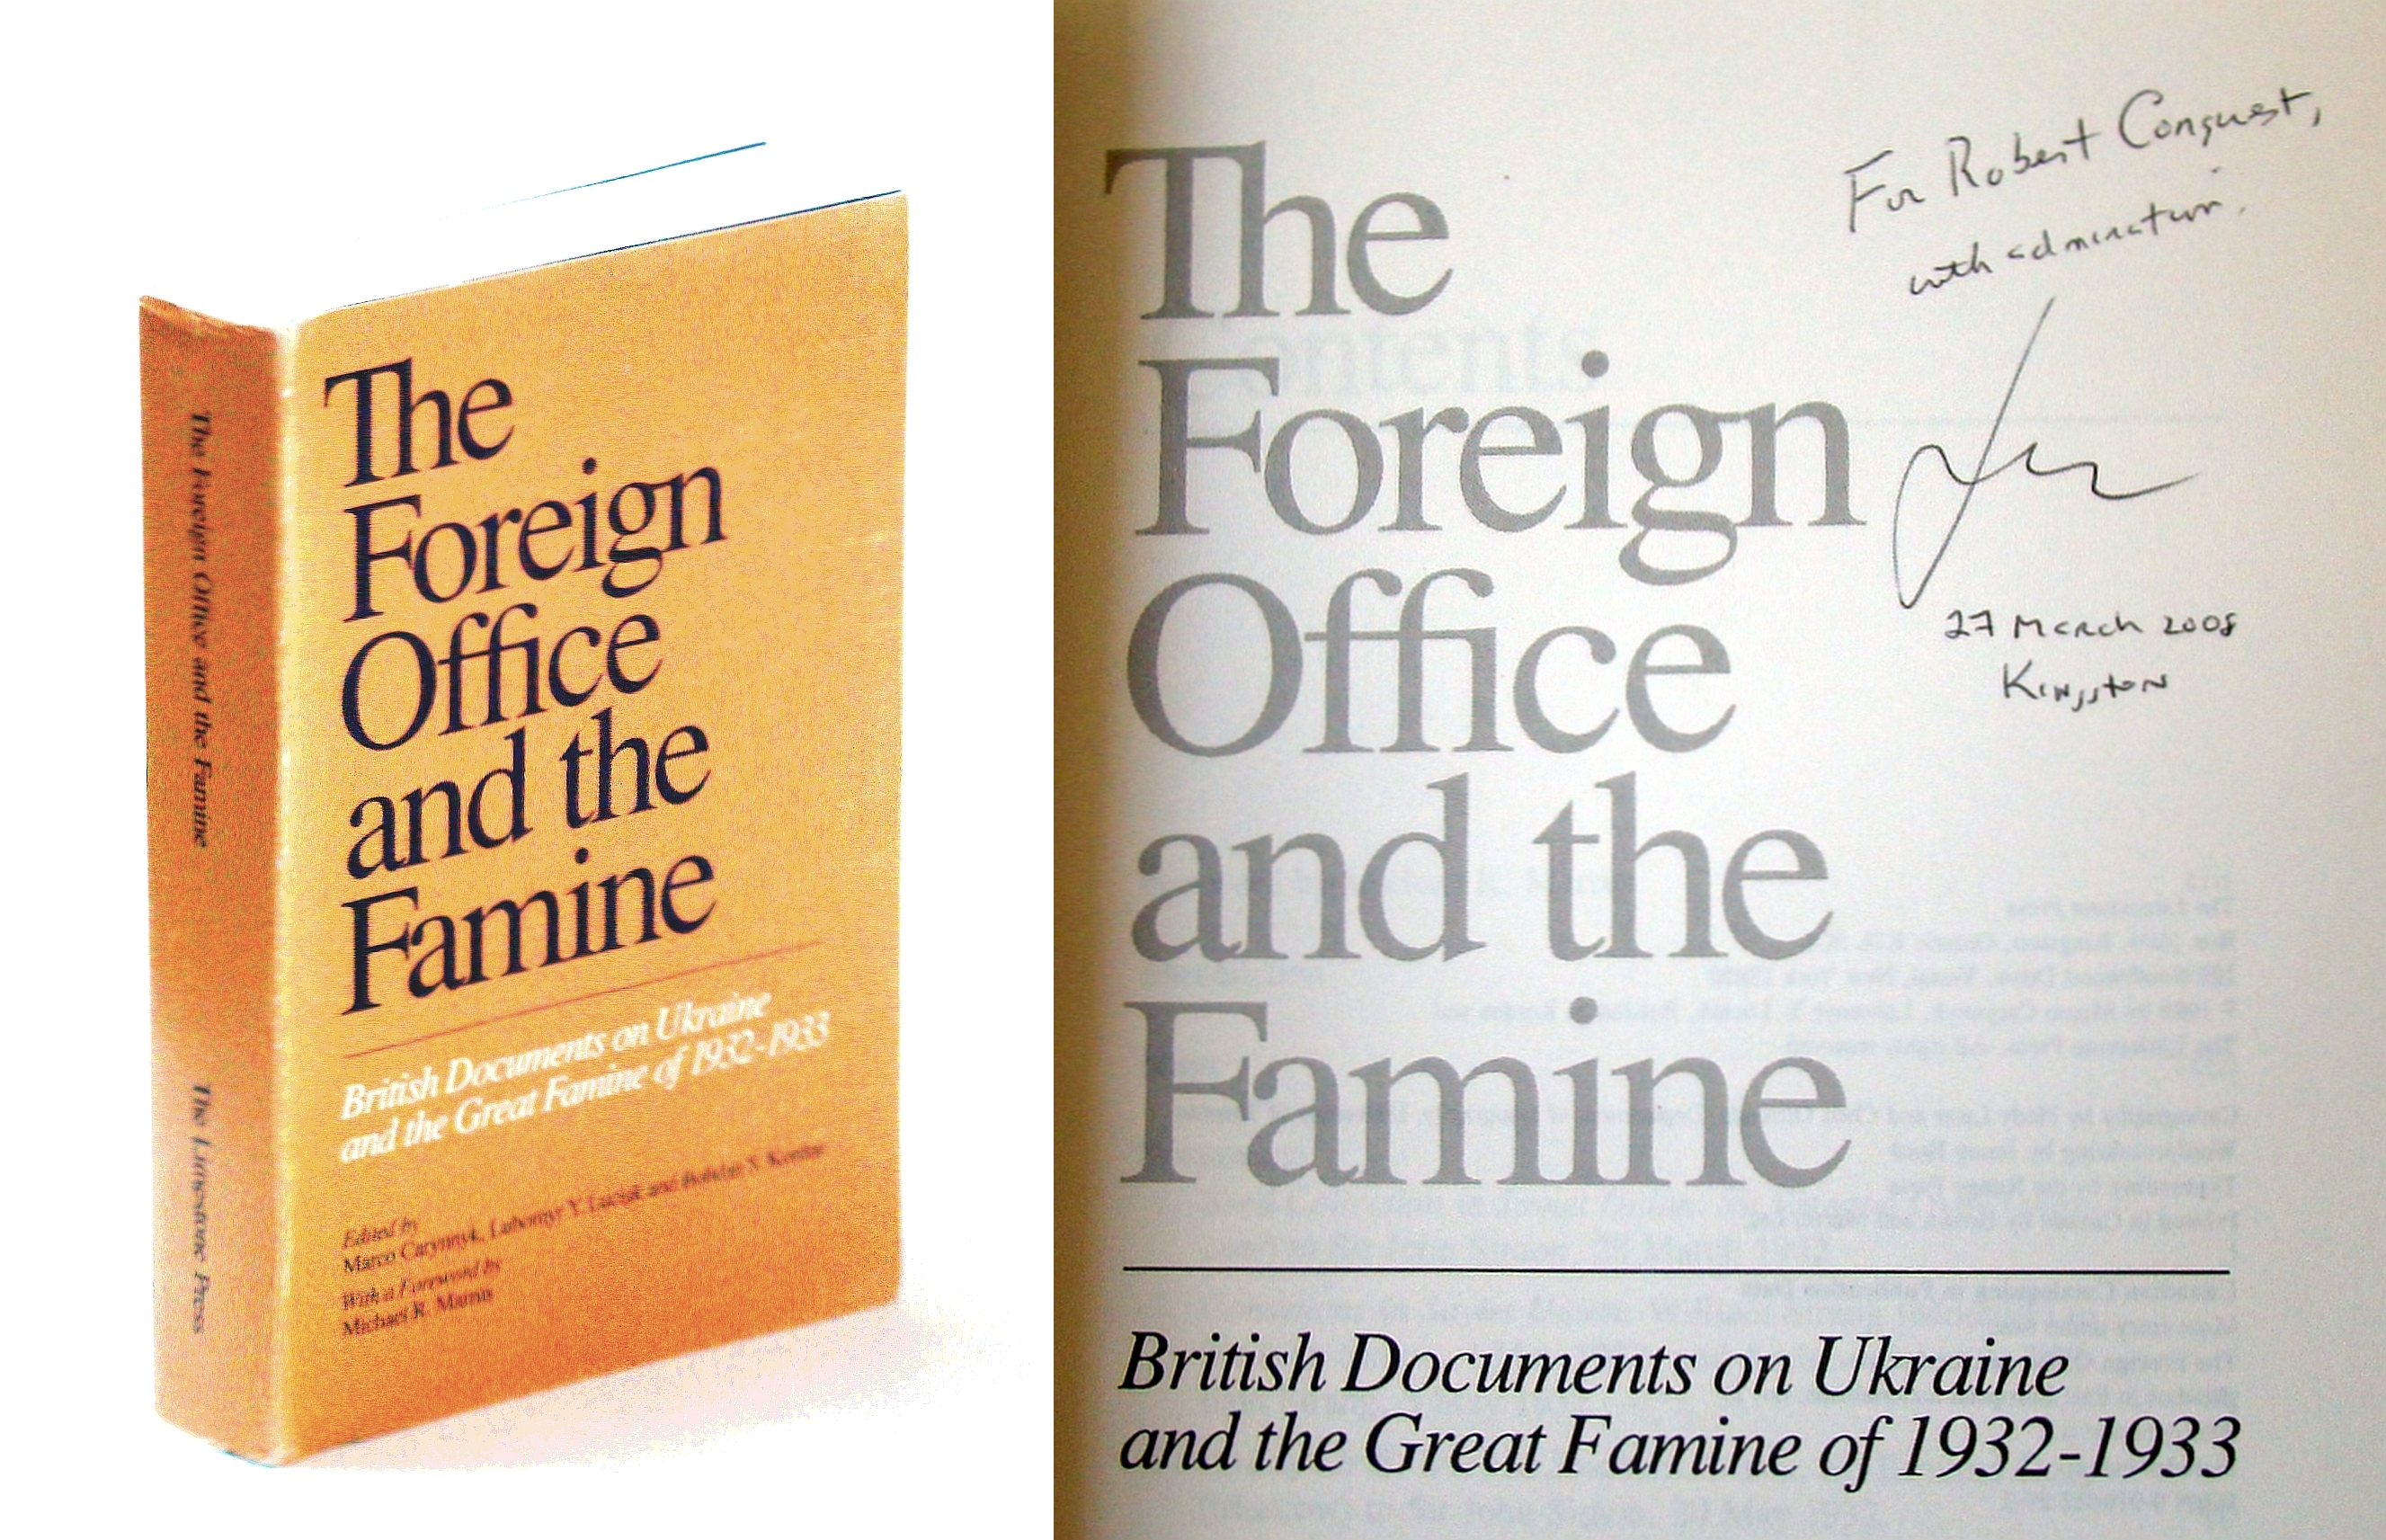 The Foreign Office and the famine: British documents on Ukraine and the great famine of 1932-1933